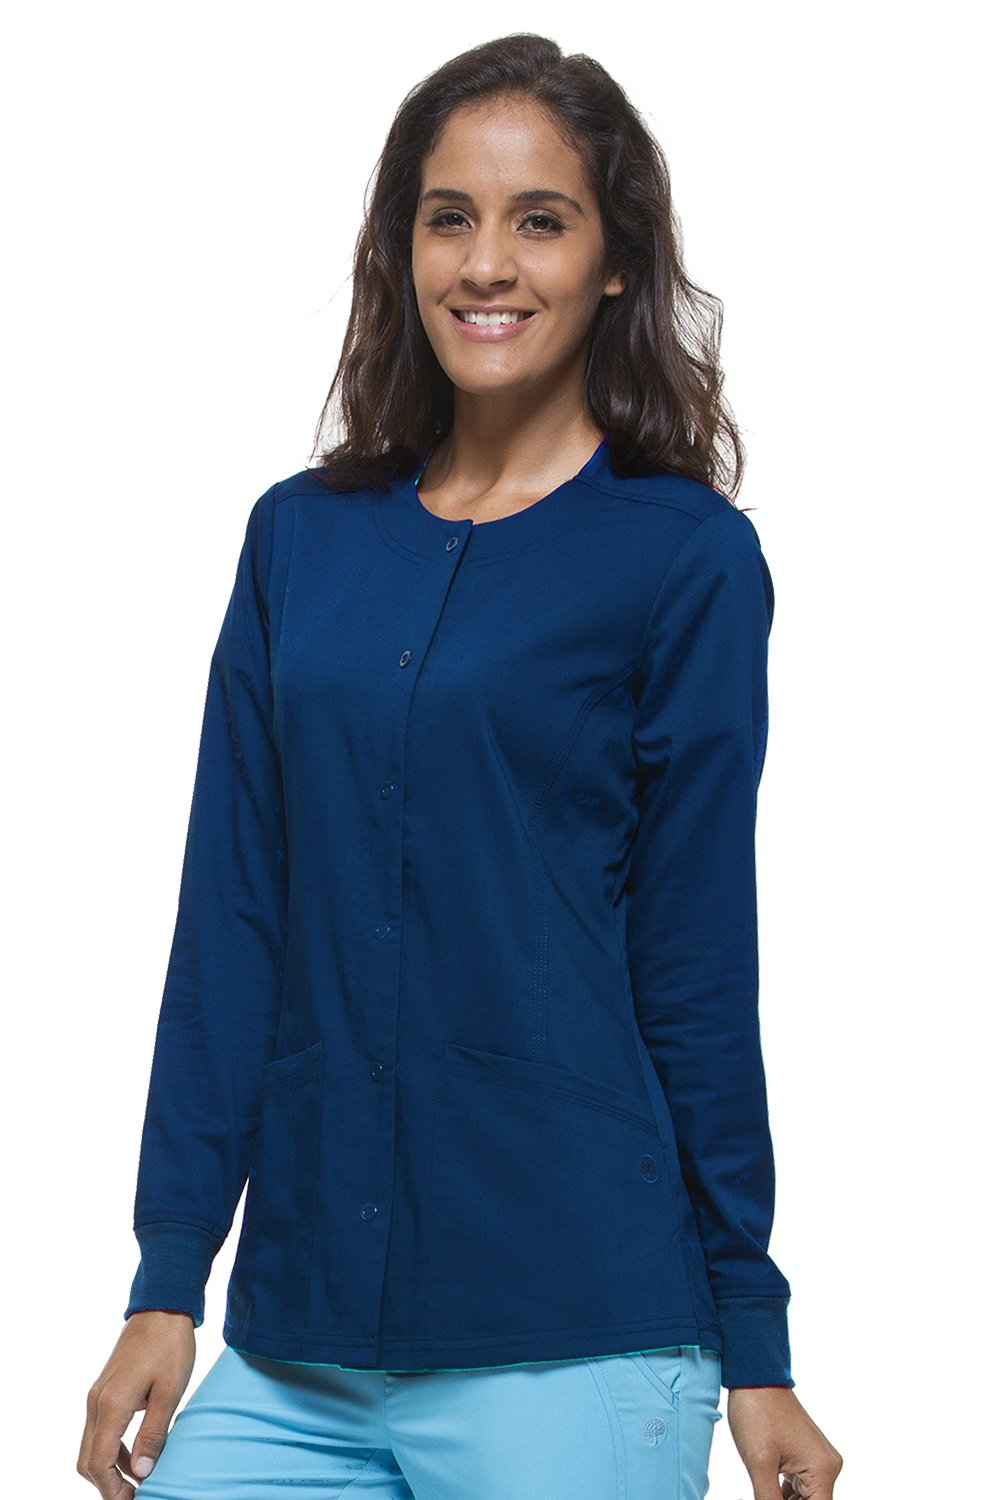 Purple Label Women's Daisy 5063 Snap Button Jacket by Healing Hands Scrubs- Navy- Small